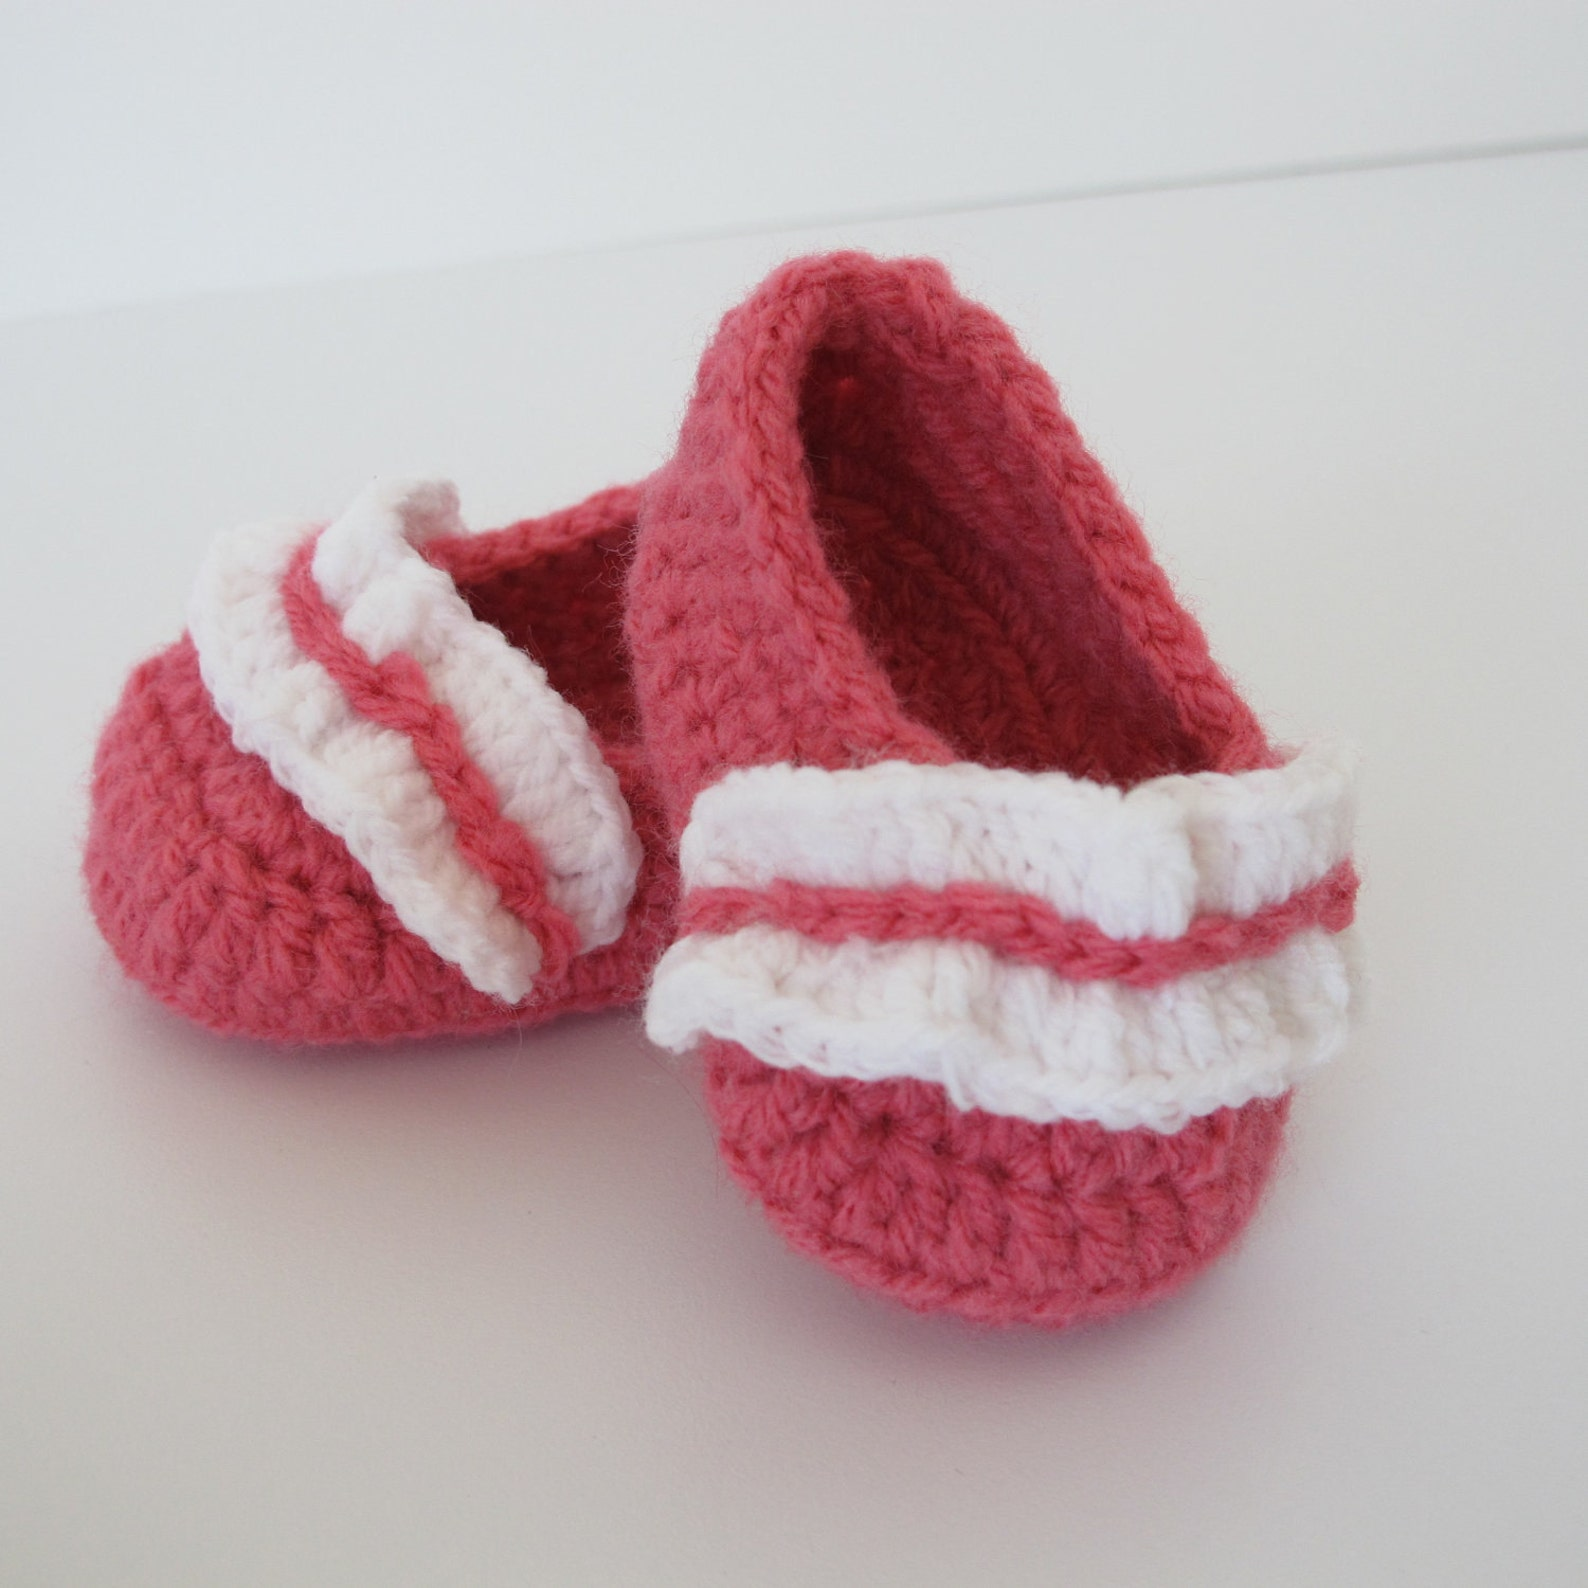 baby's first ballet shoes in bright coral with a white ruffle